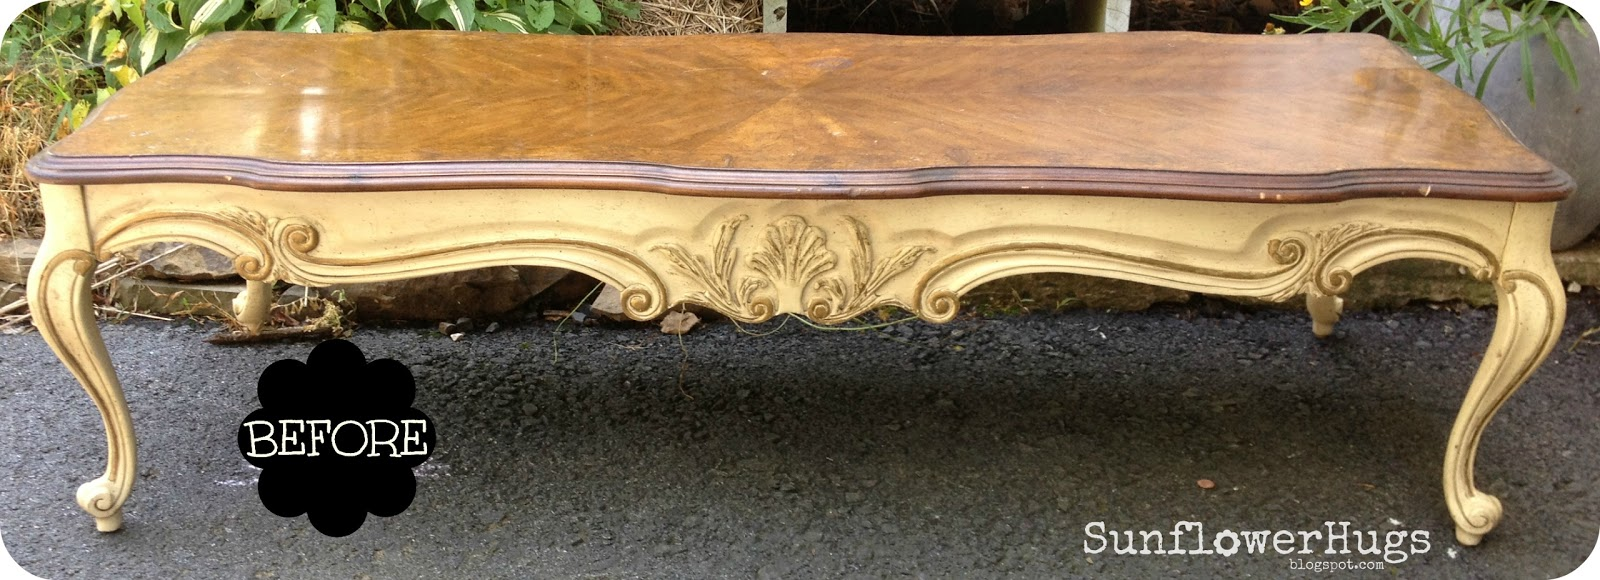 Country Coffee Tables And End Tables Sunflowerhugs 5 Long French Country Coffee Table